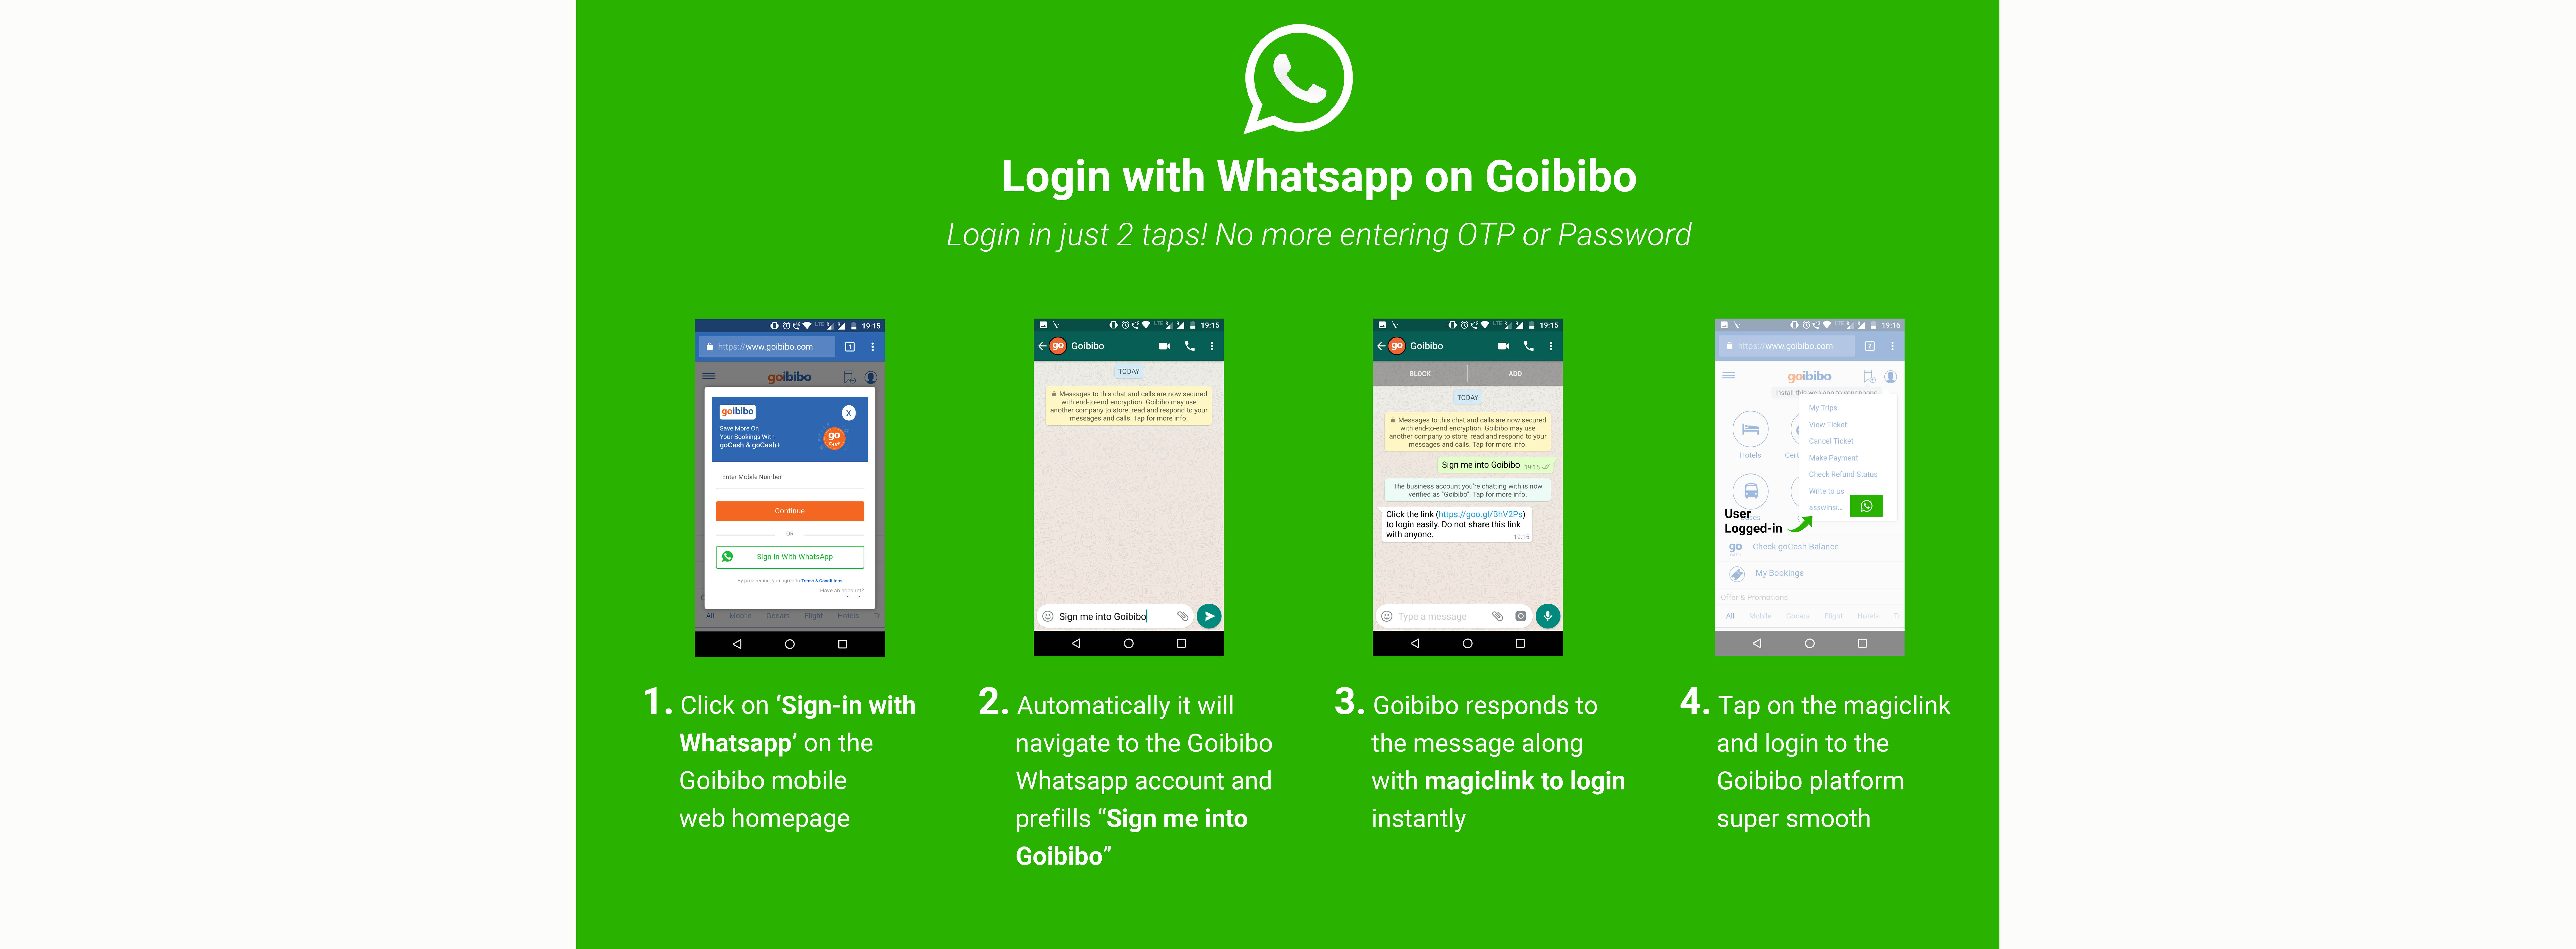 Imagine being able to use WhatsApp without phone number or SIM card ... Just follow the steps below to use WhatsApp without a mobile phone number or SIM card. 1.